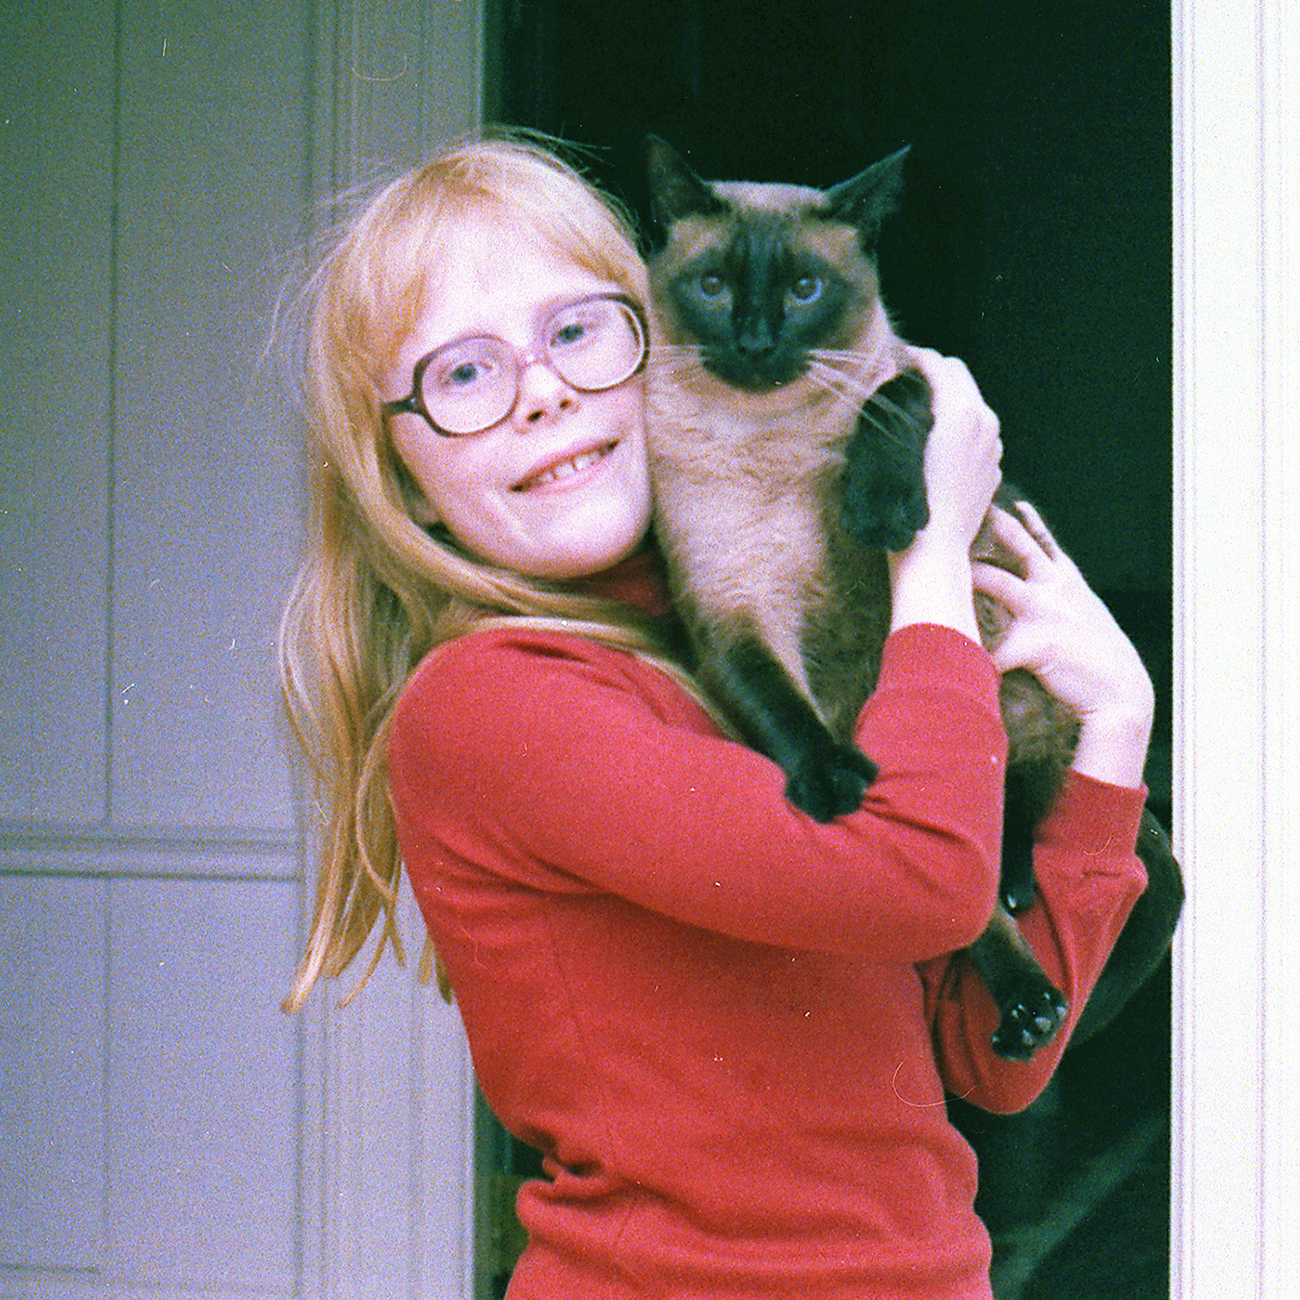 Photo of girl with glasses holding a tan cat